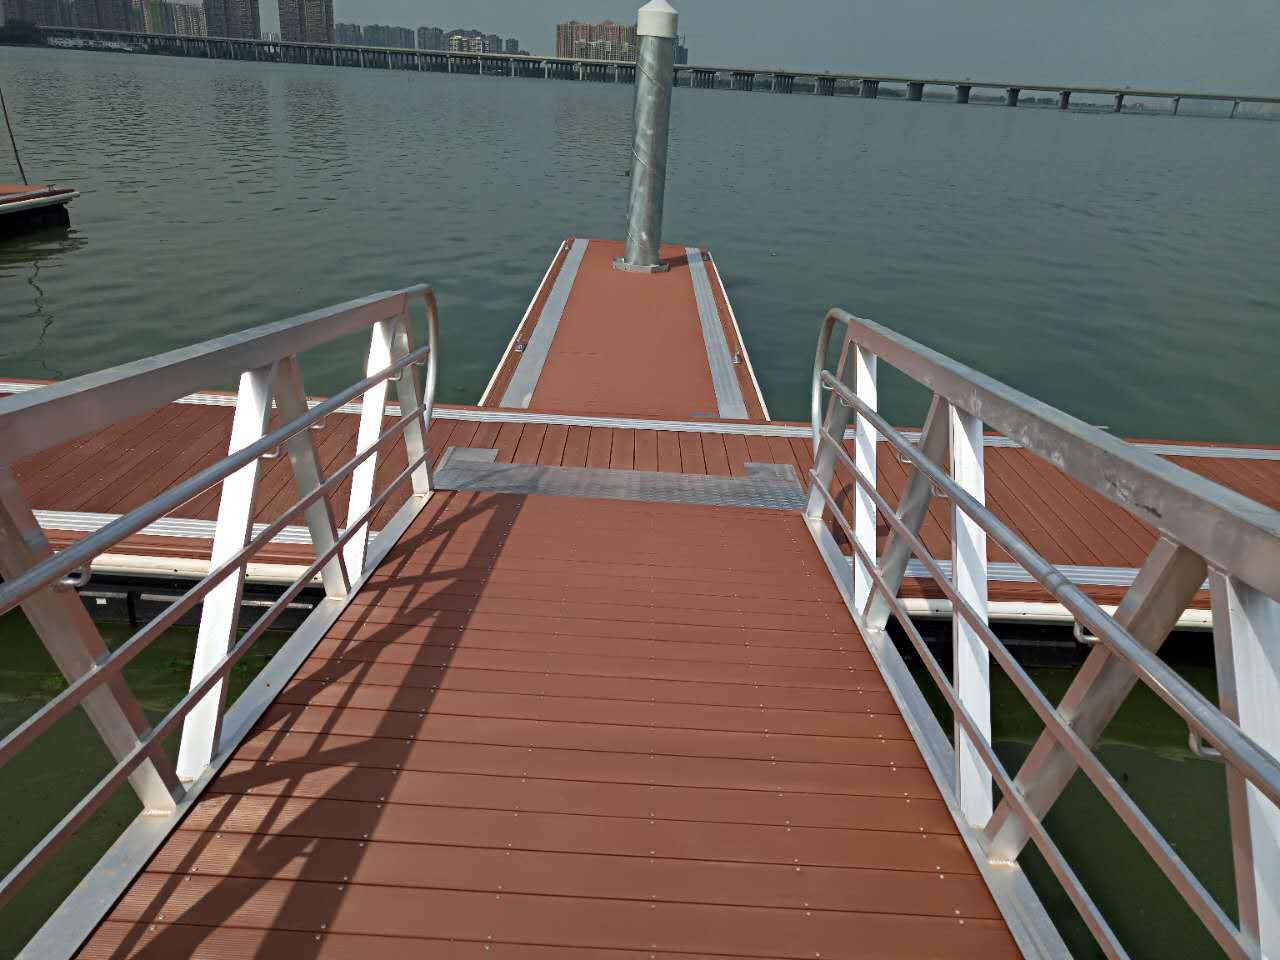 The Wuhan yacht dock, motorboat dock